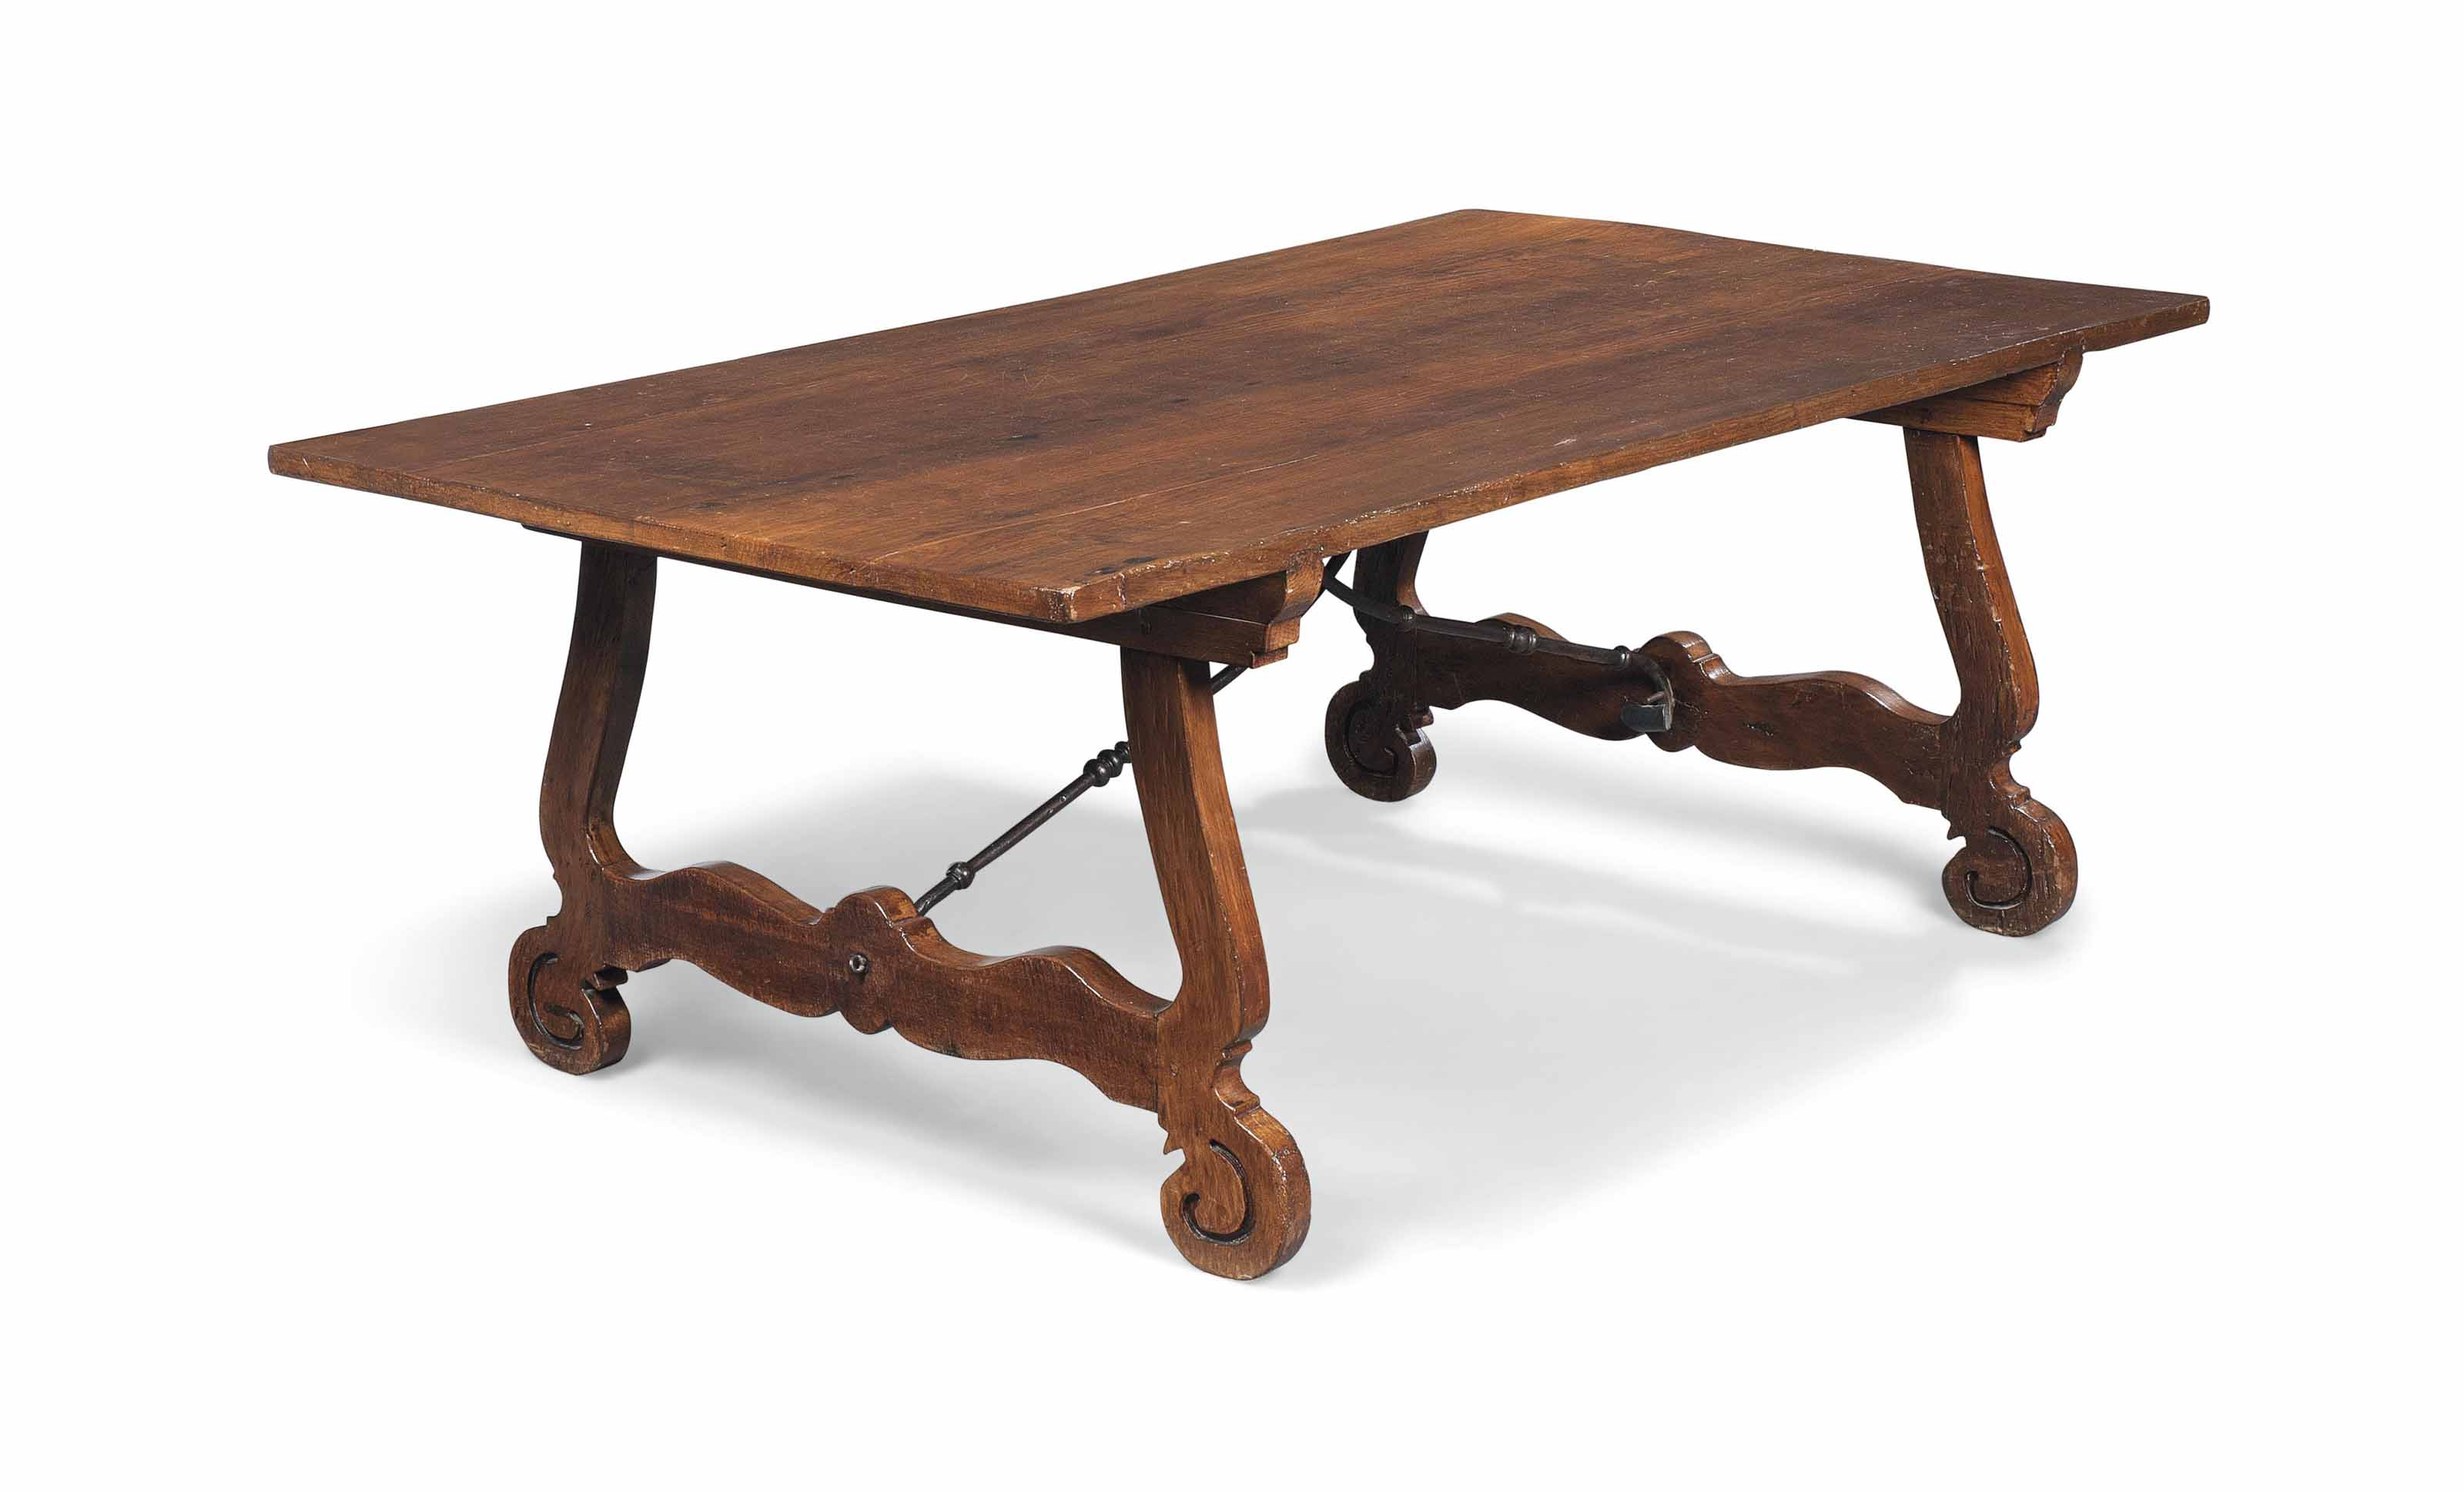 A LARGE SPANISH CHESTNUT TABLE